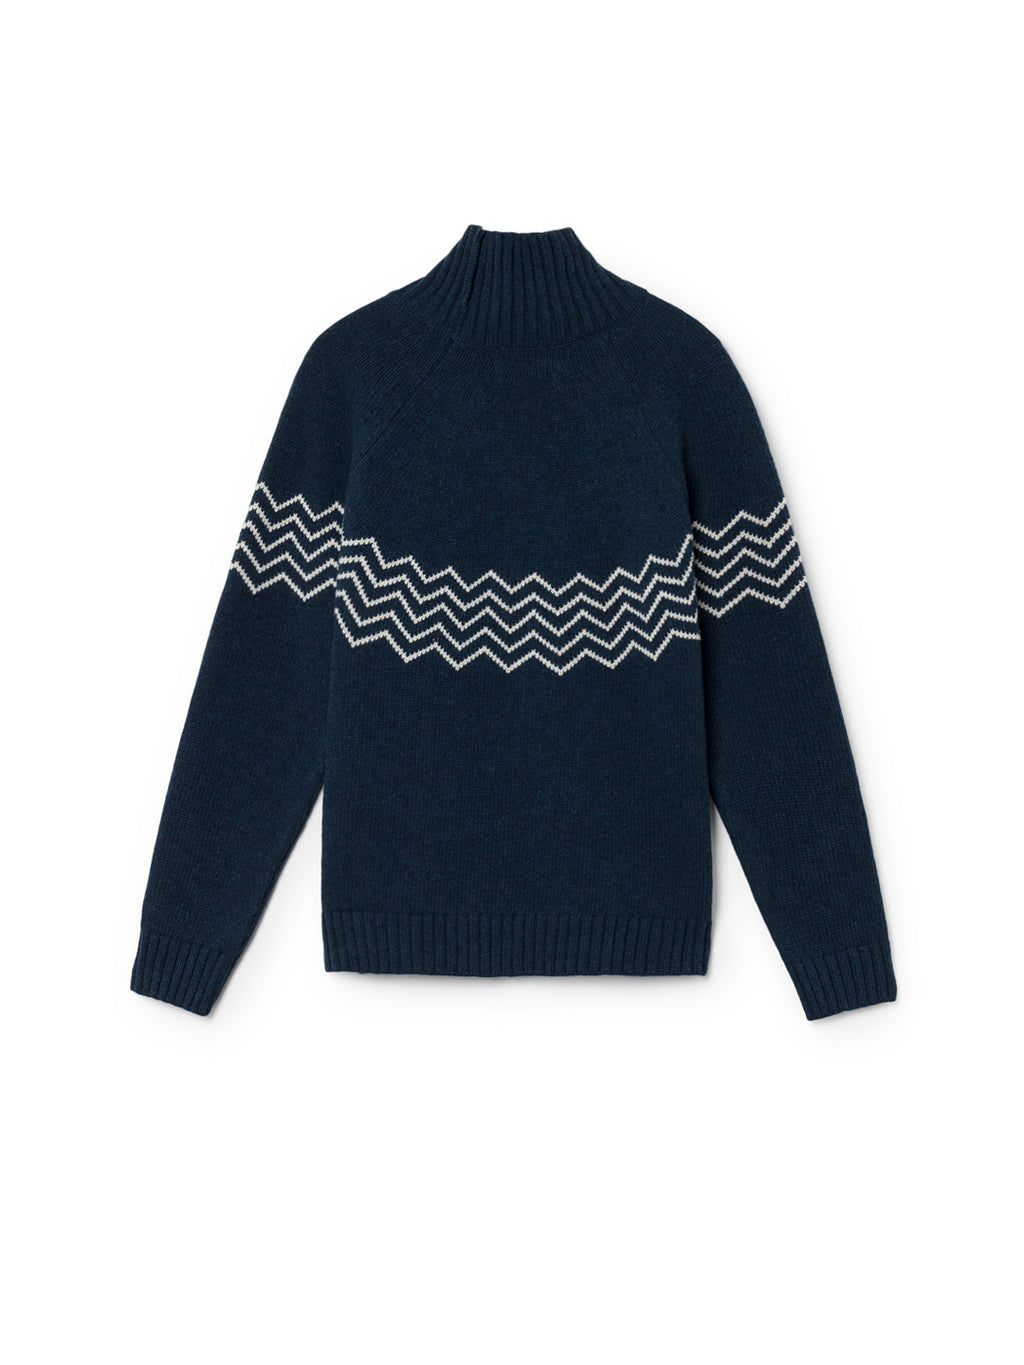 TWOTHIRDS Womens Knit: Ouvea - Navy back